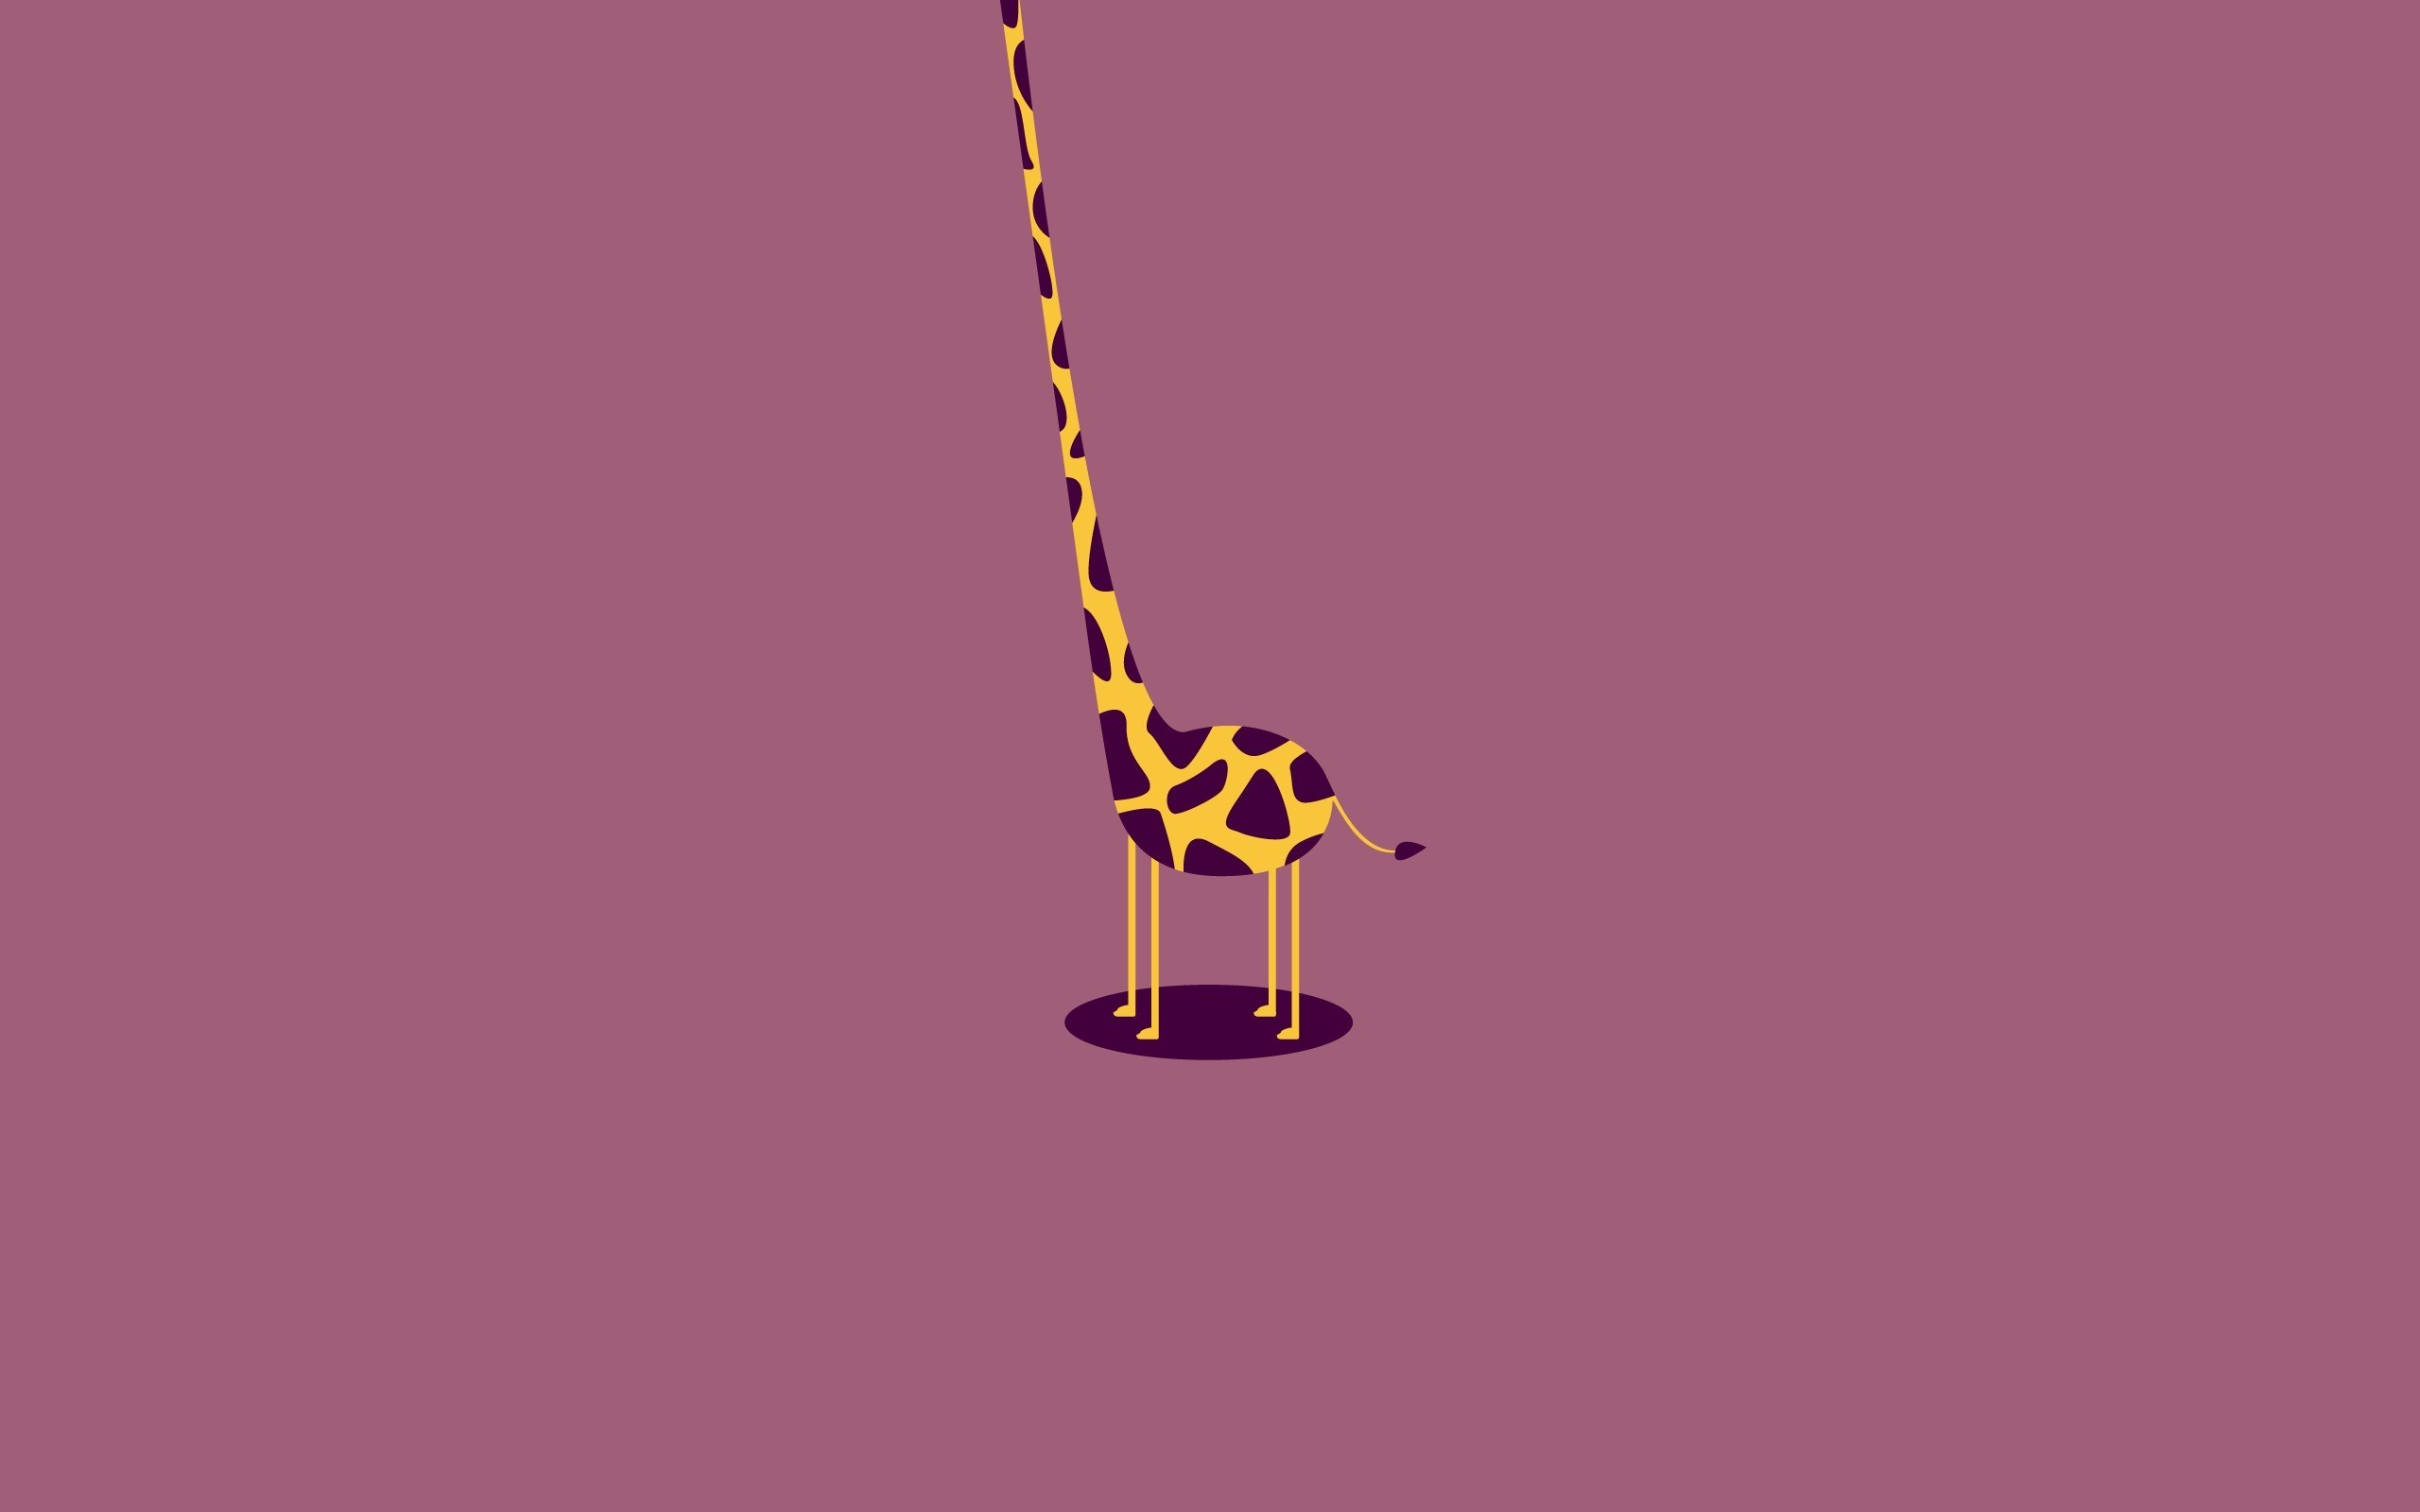 Cute Giraffe Wallpaper 2560x1600